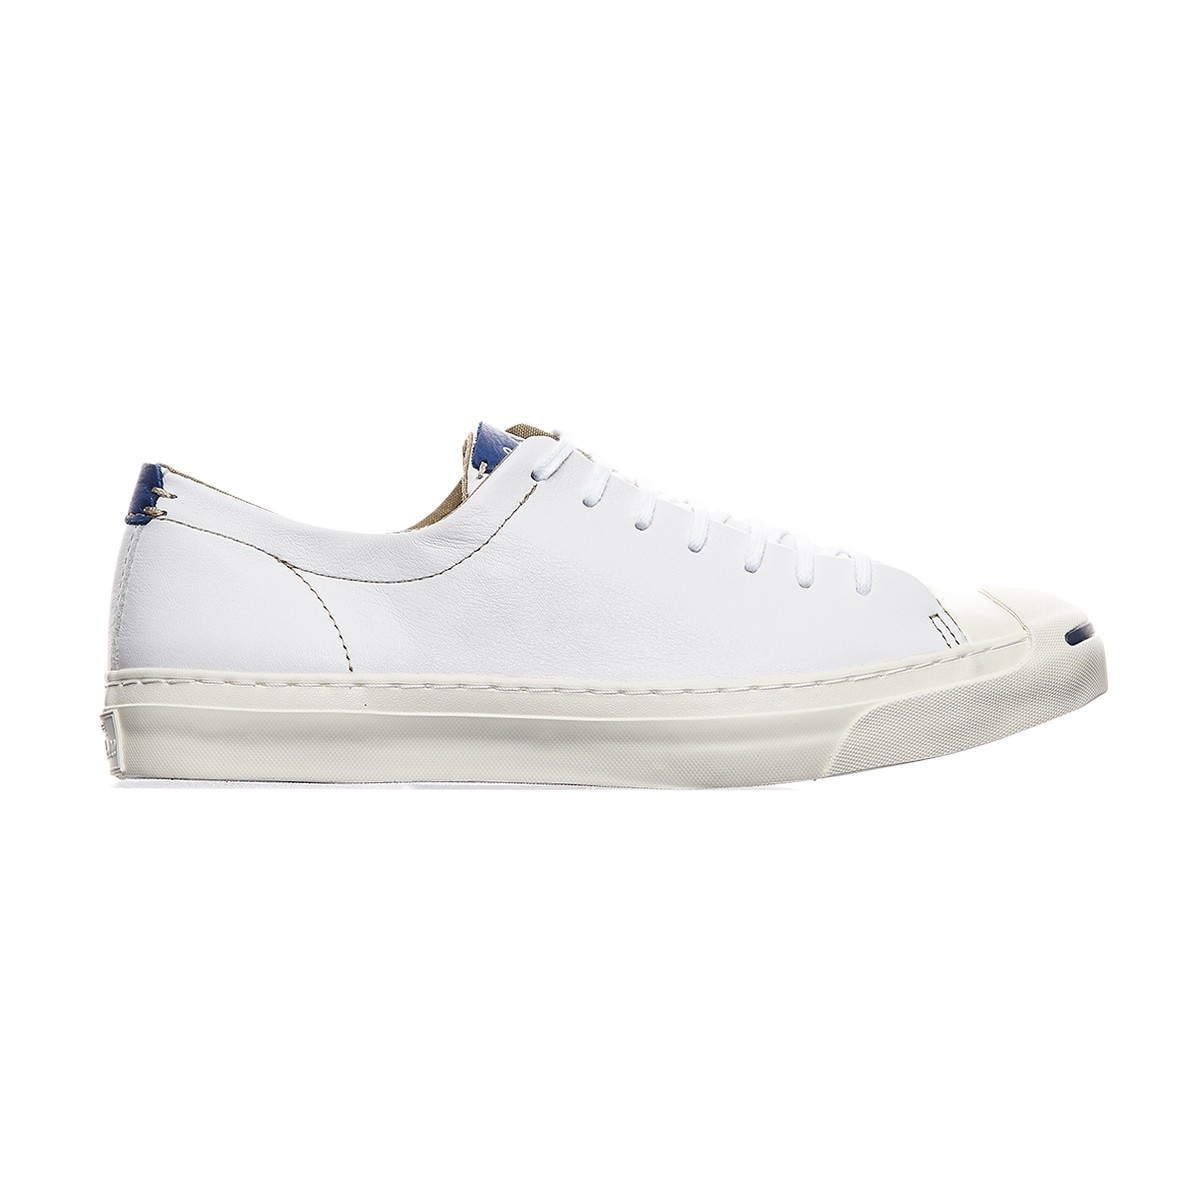 472a64edf518f4 Lyst - Converse Jack Purcell Ltt Ox Leather Sneakers in White for Men